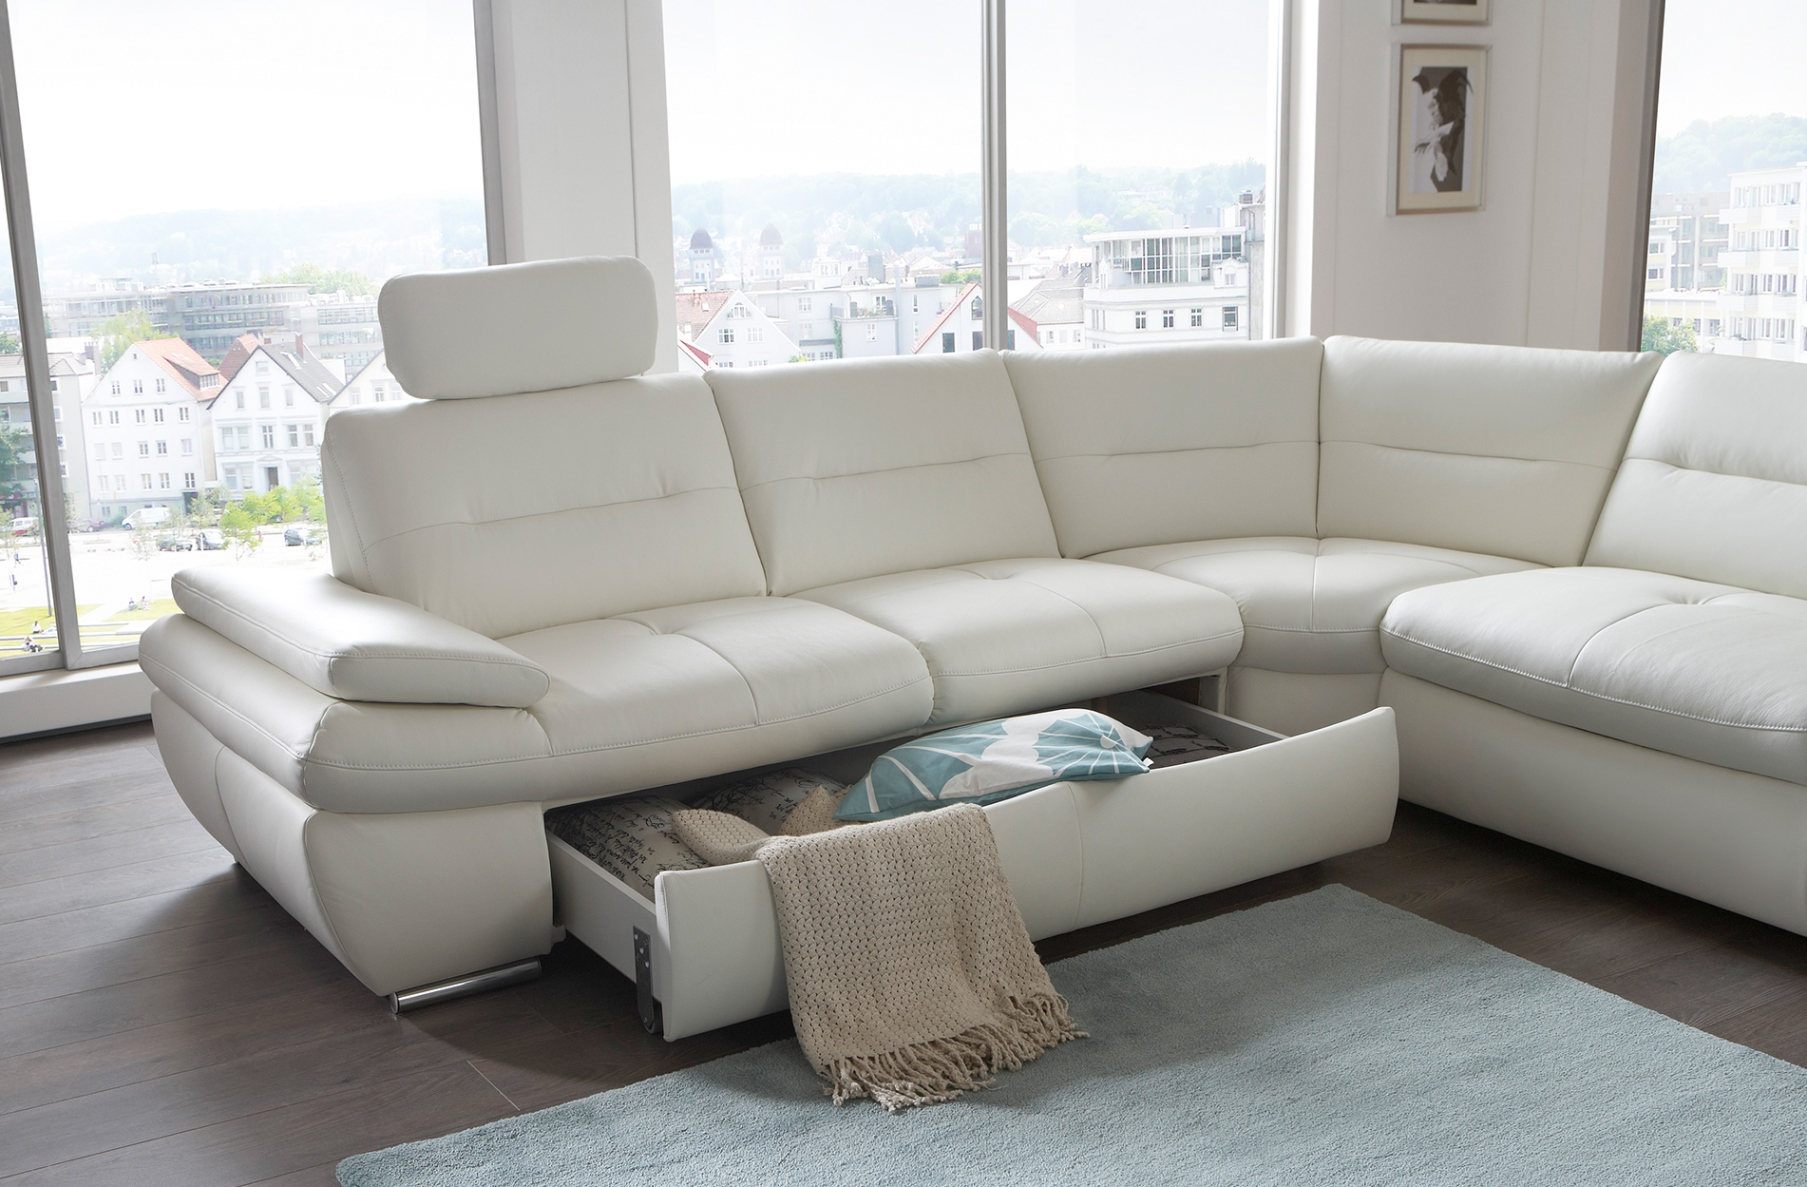 sofa spring clip strip ambient lounge twin couch bean bag sofas salzburg sectional design and functionality